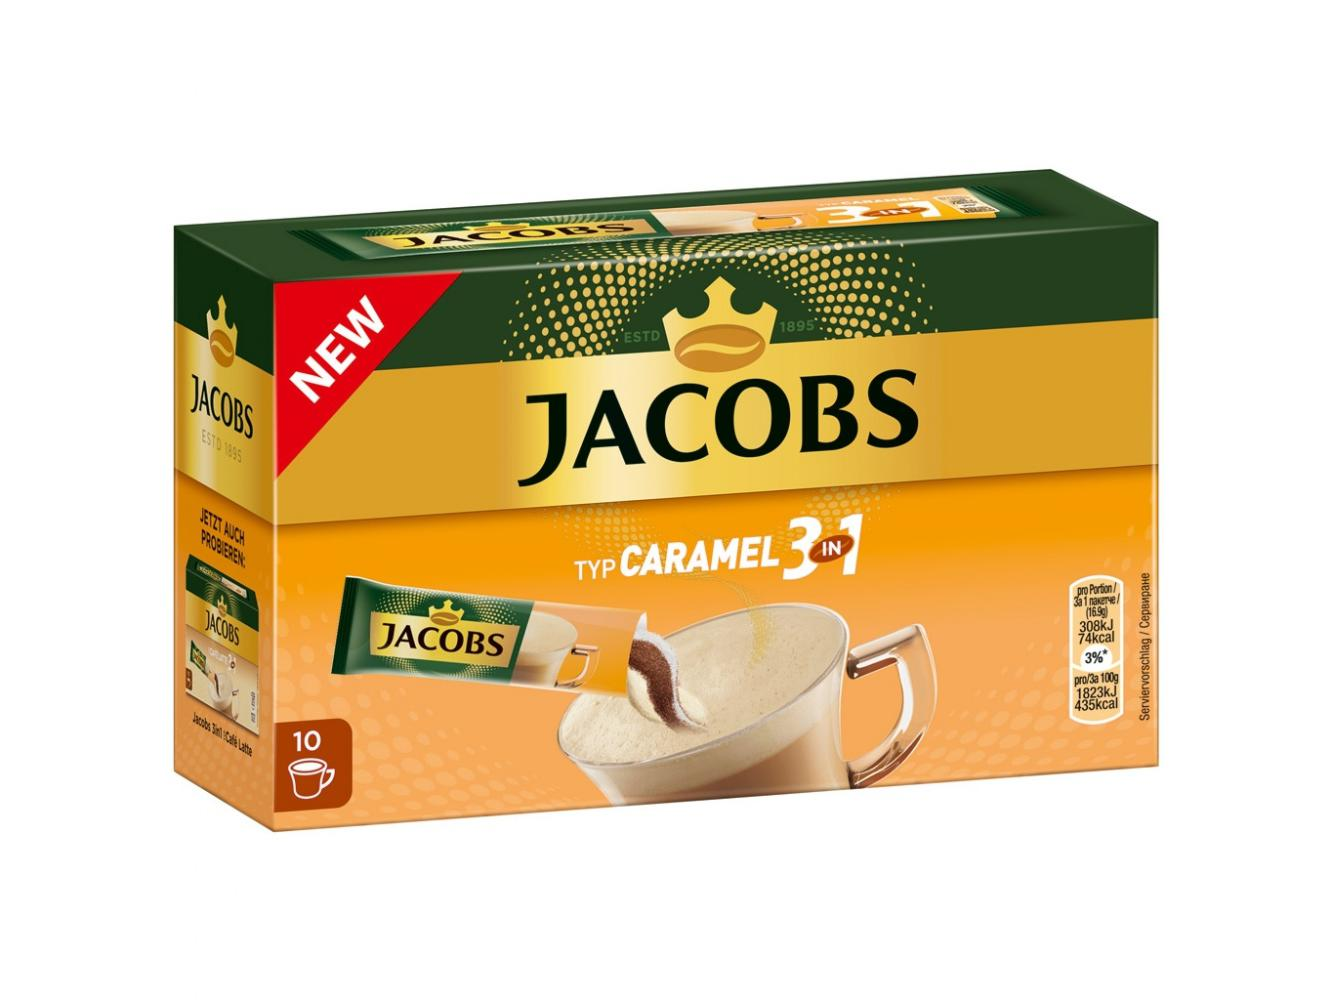 Jacobs 3 in 1 Caramel